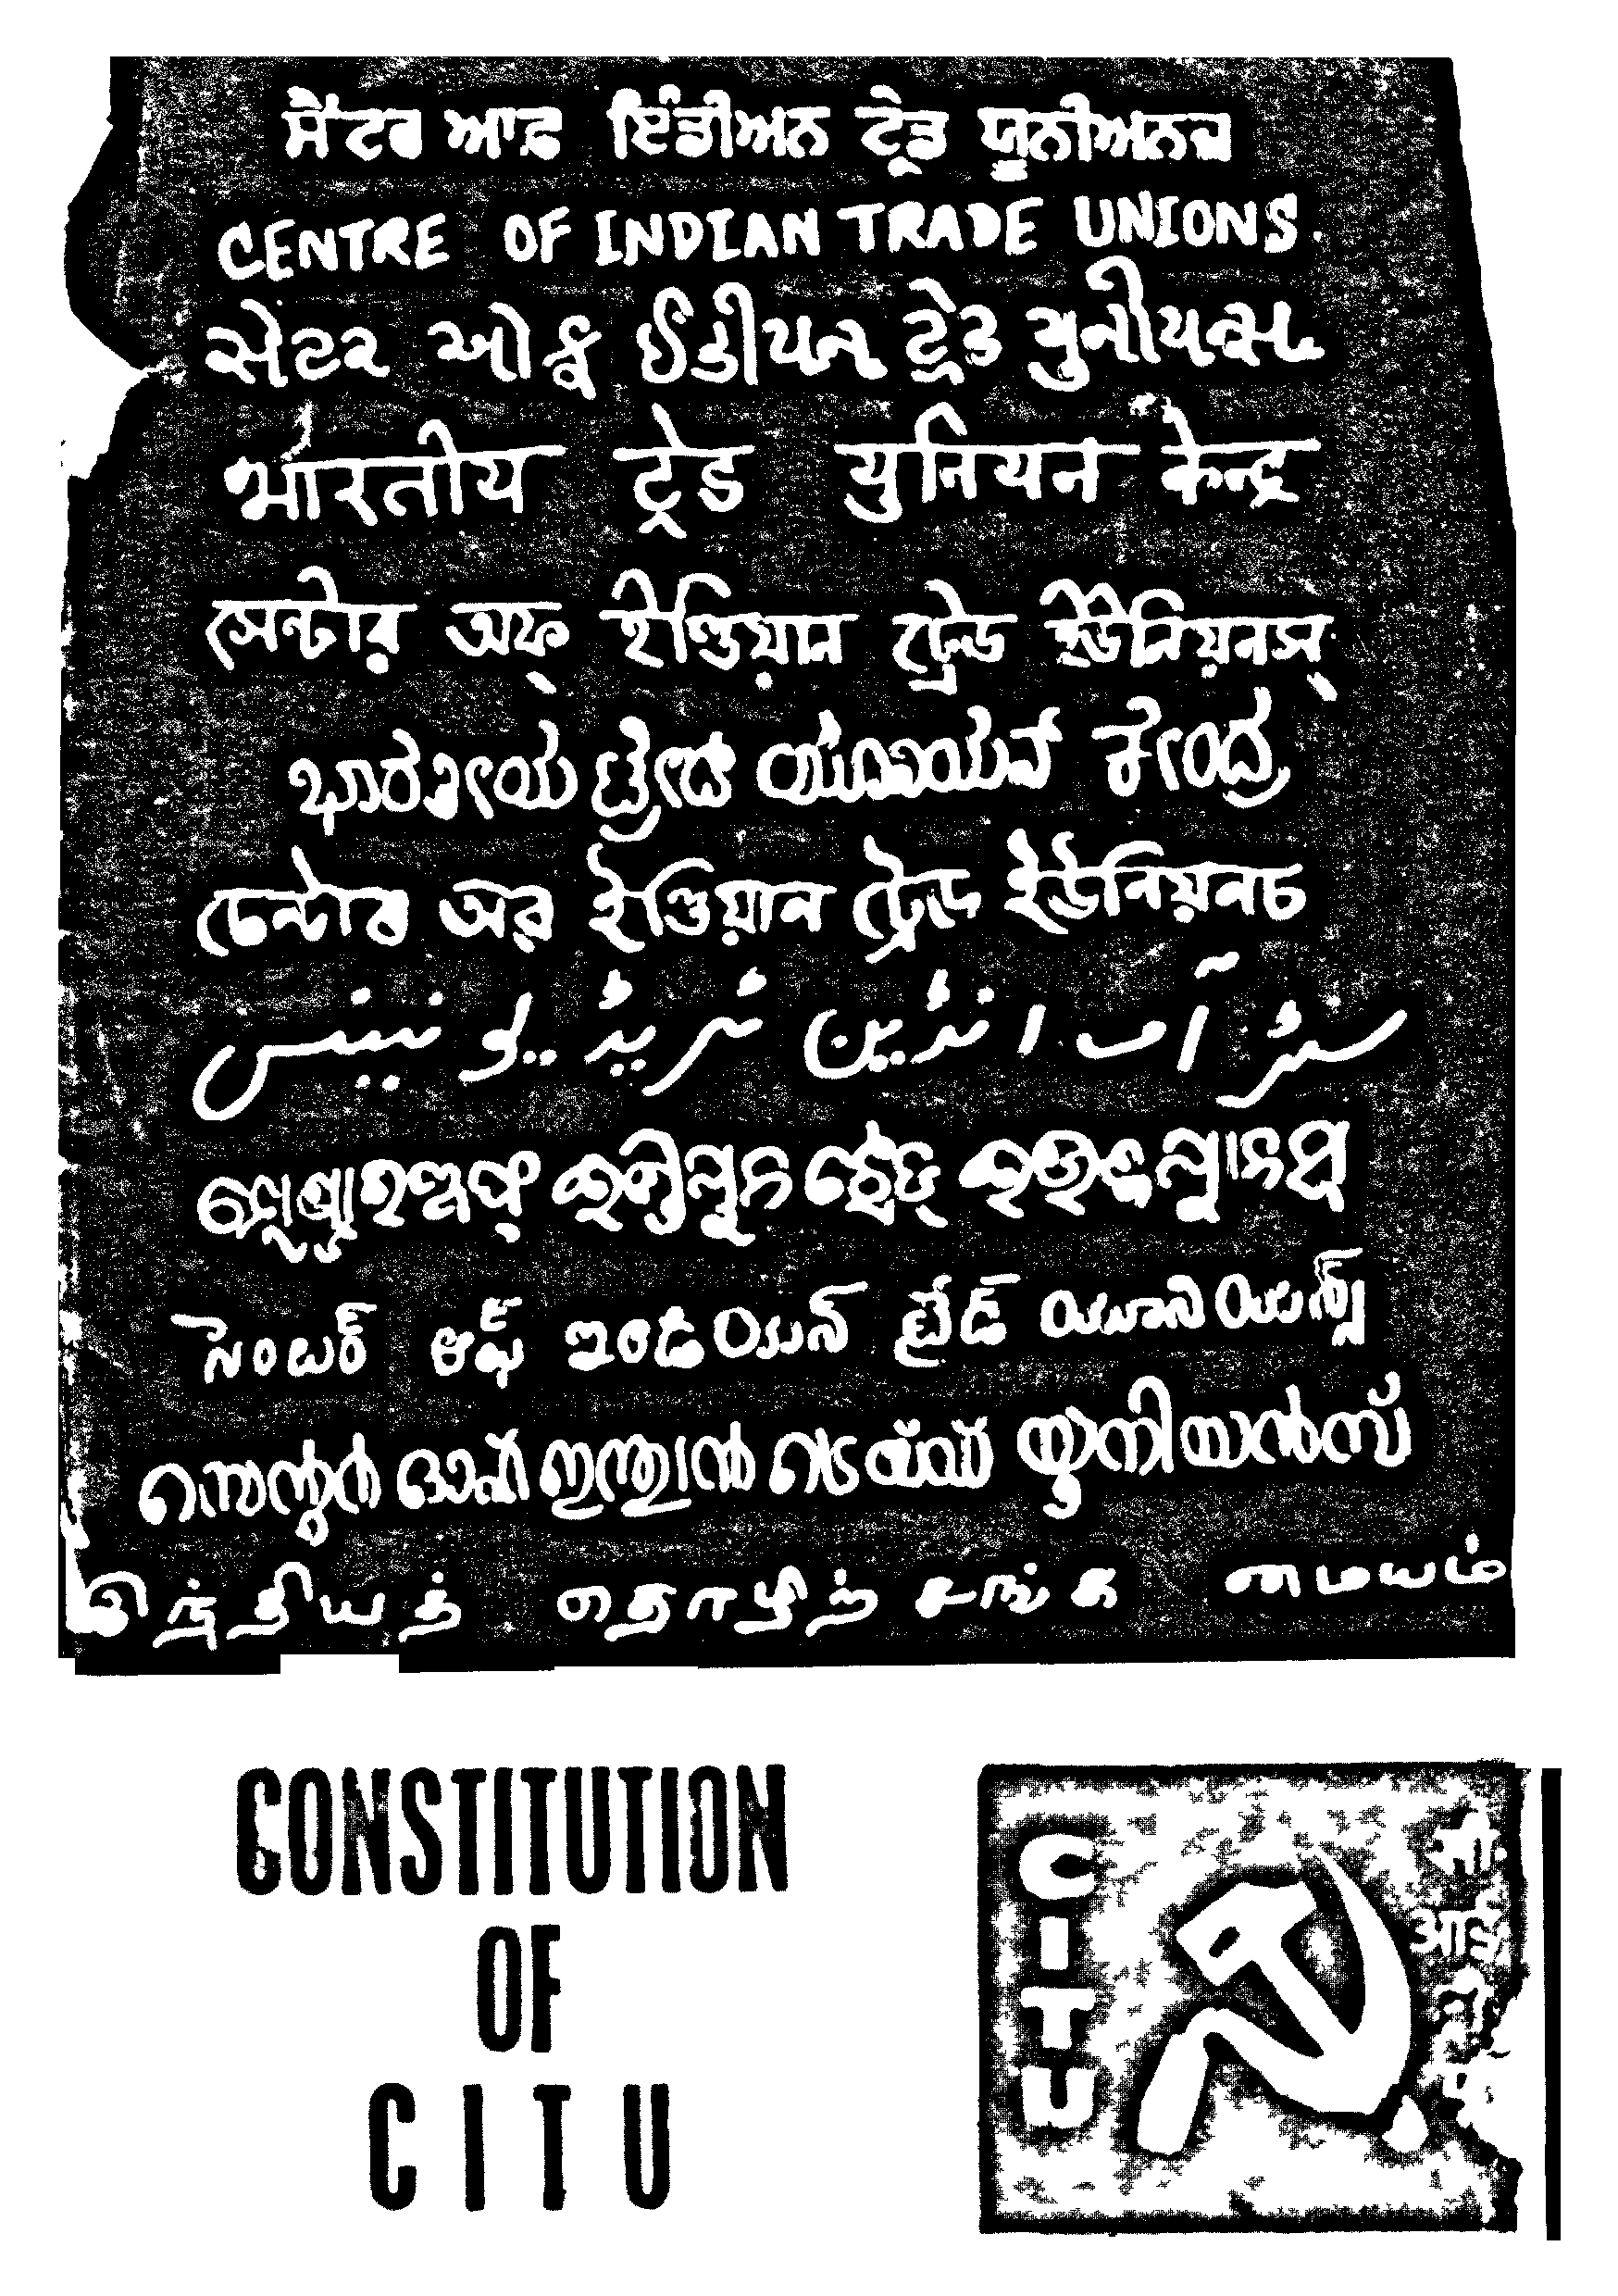 Constitution of CITU